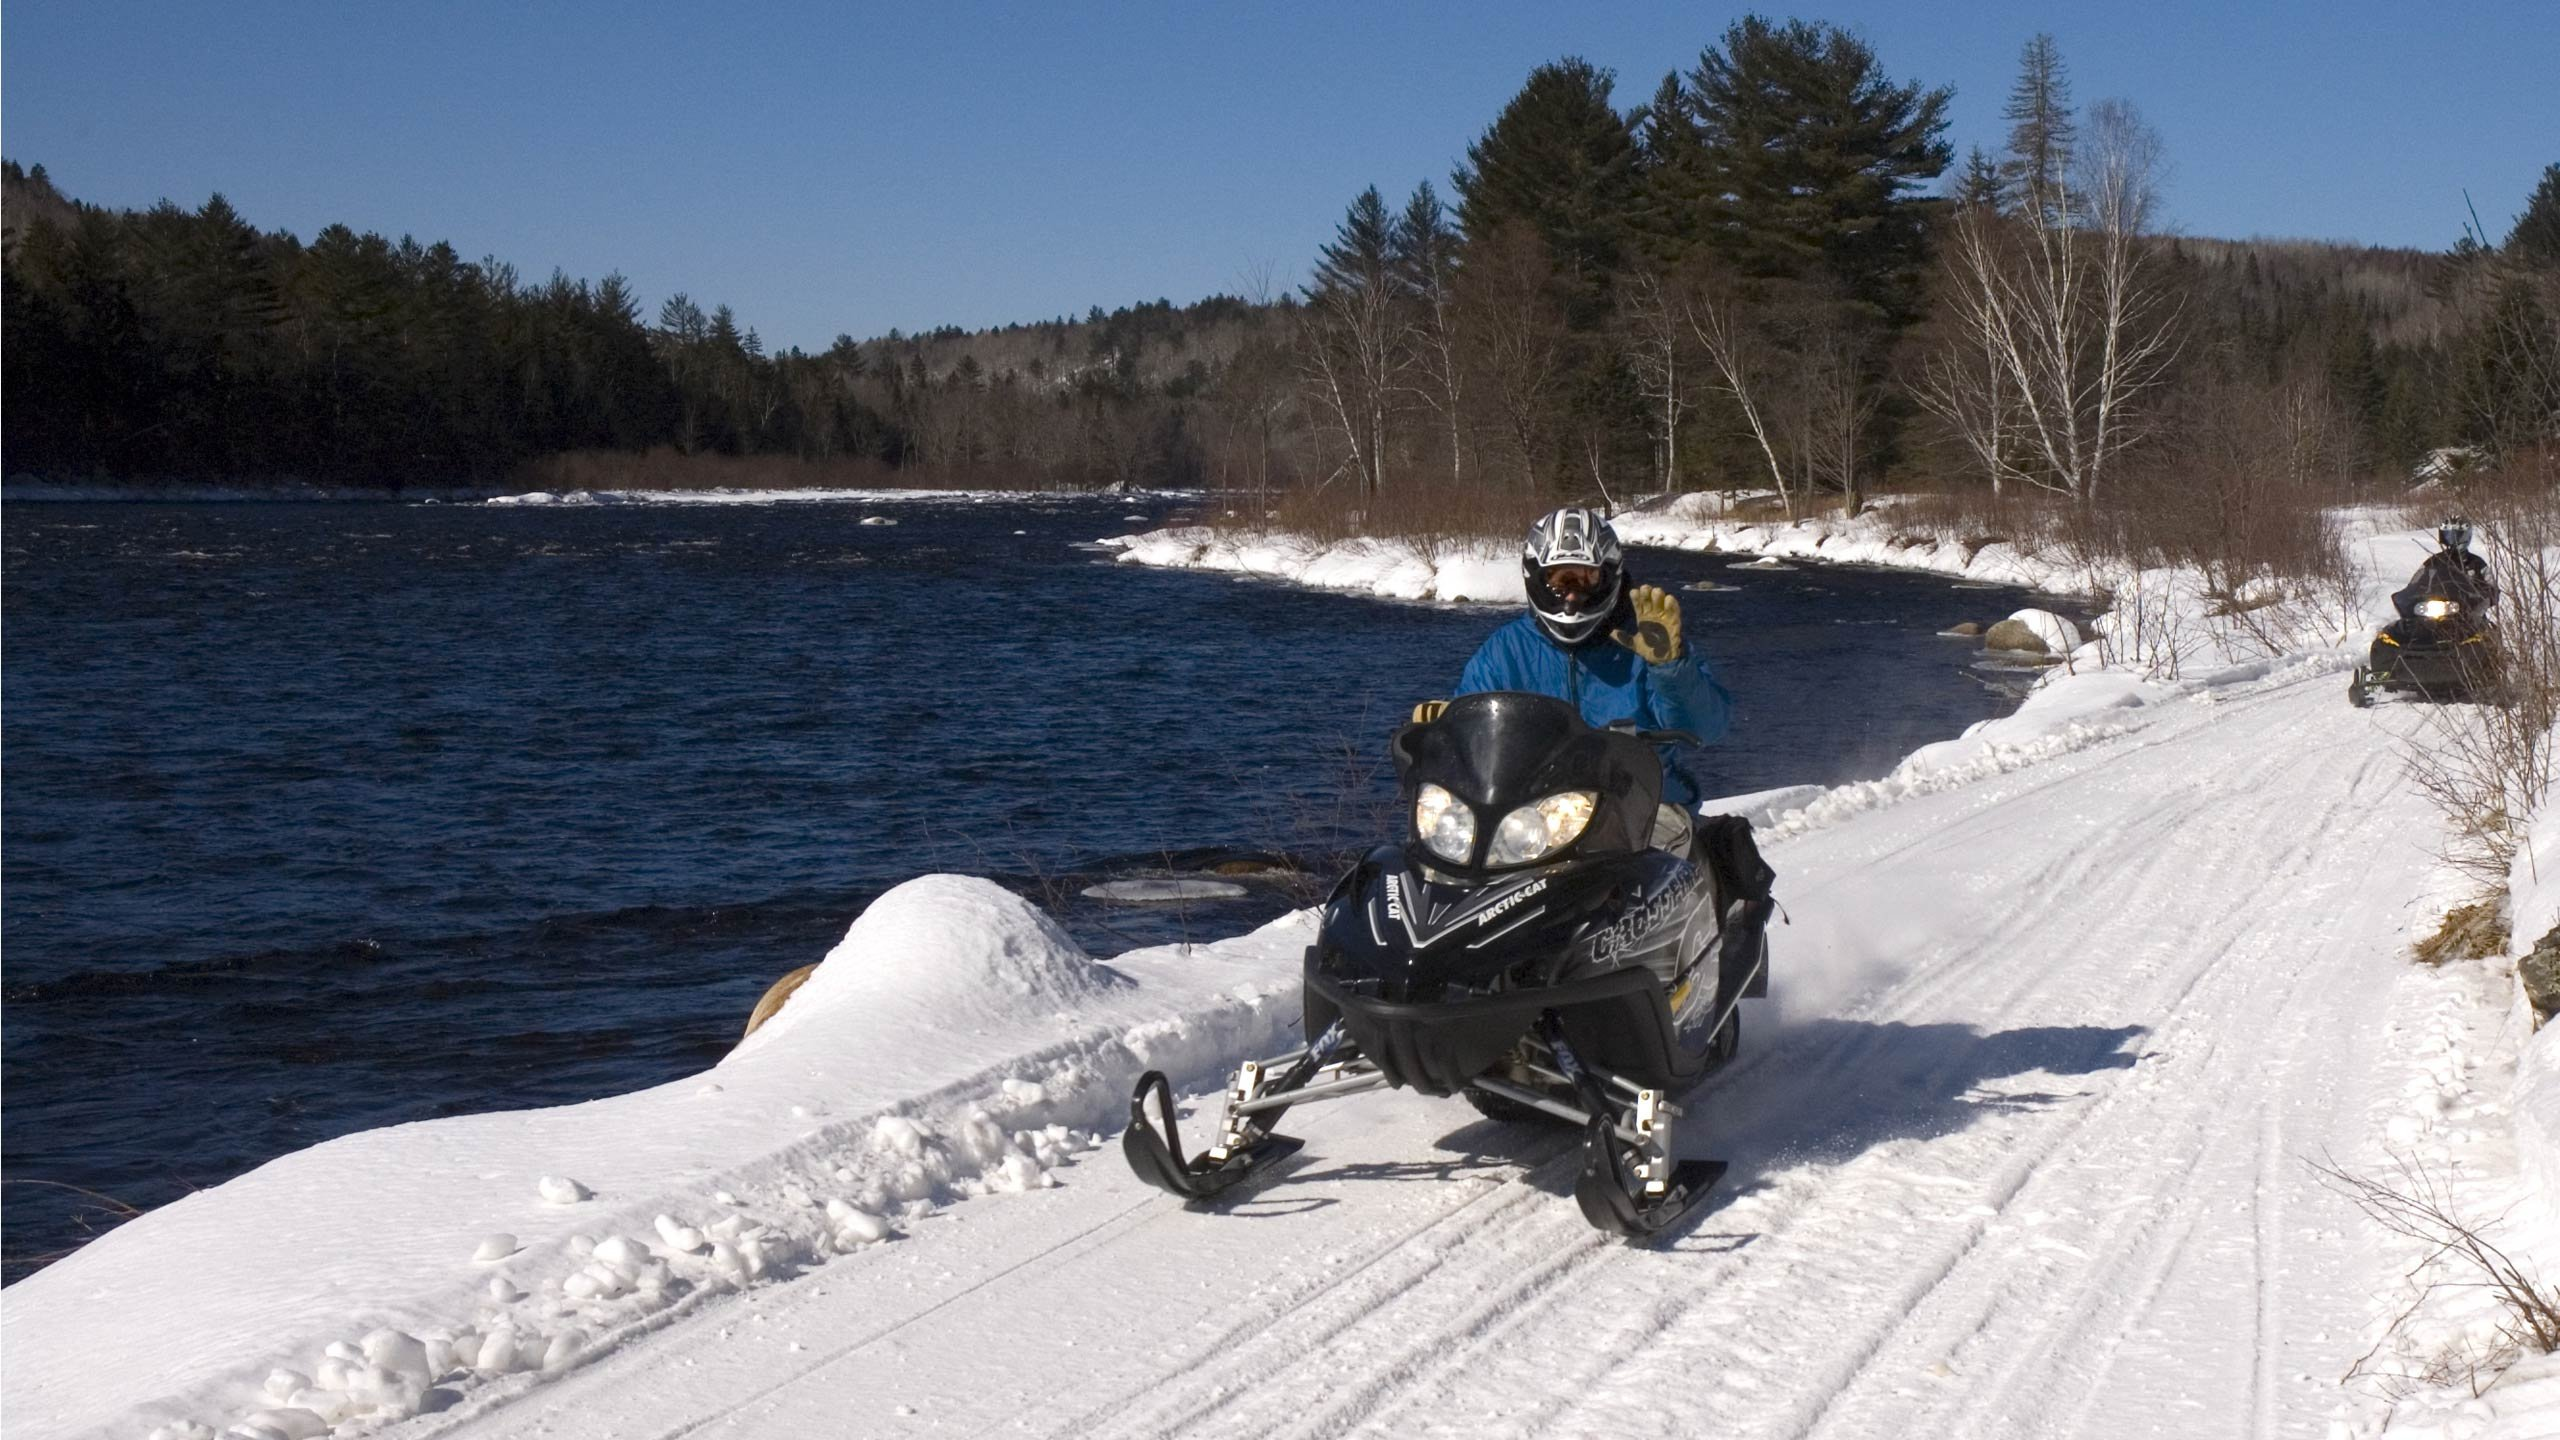 Blue sky riding day along the Kennebec River.